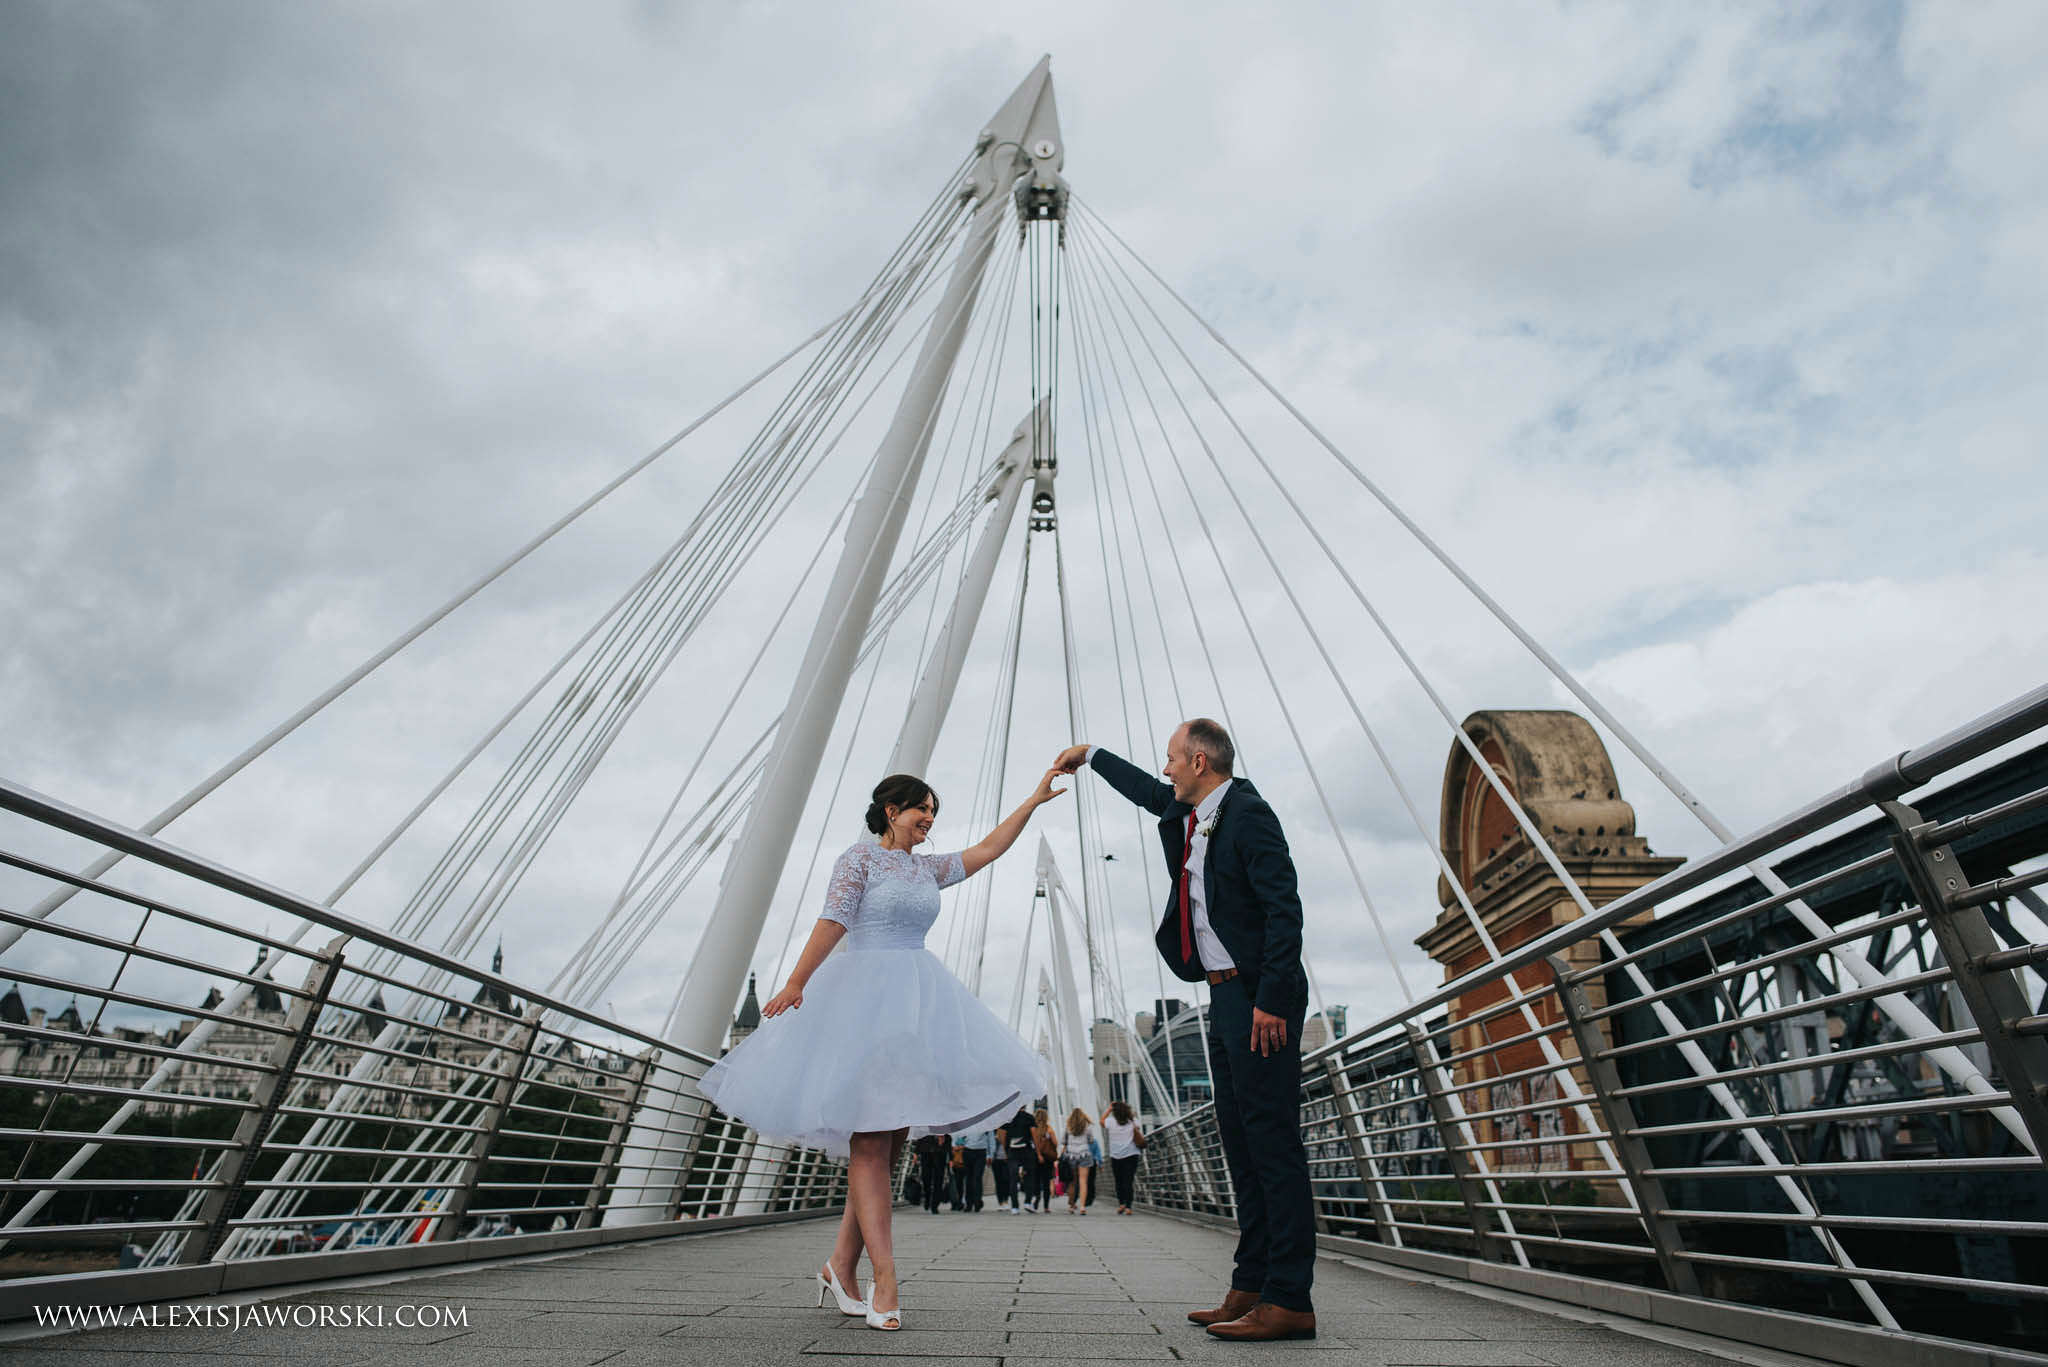 Bride and groom dancing on bridge